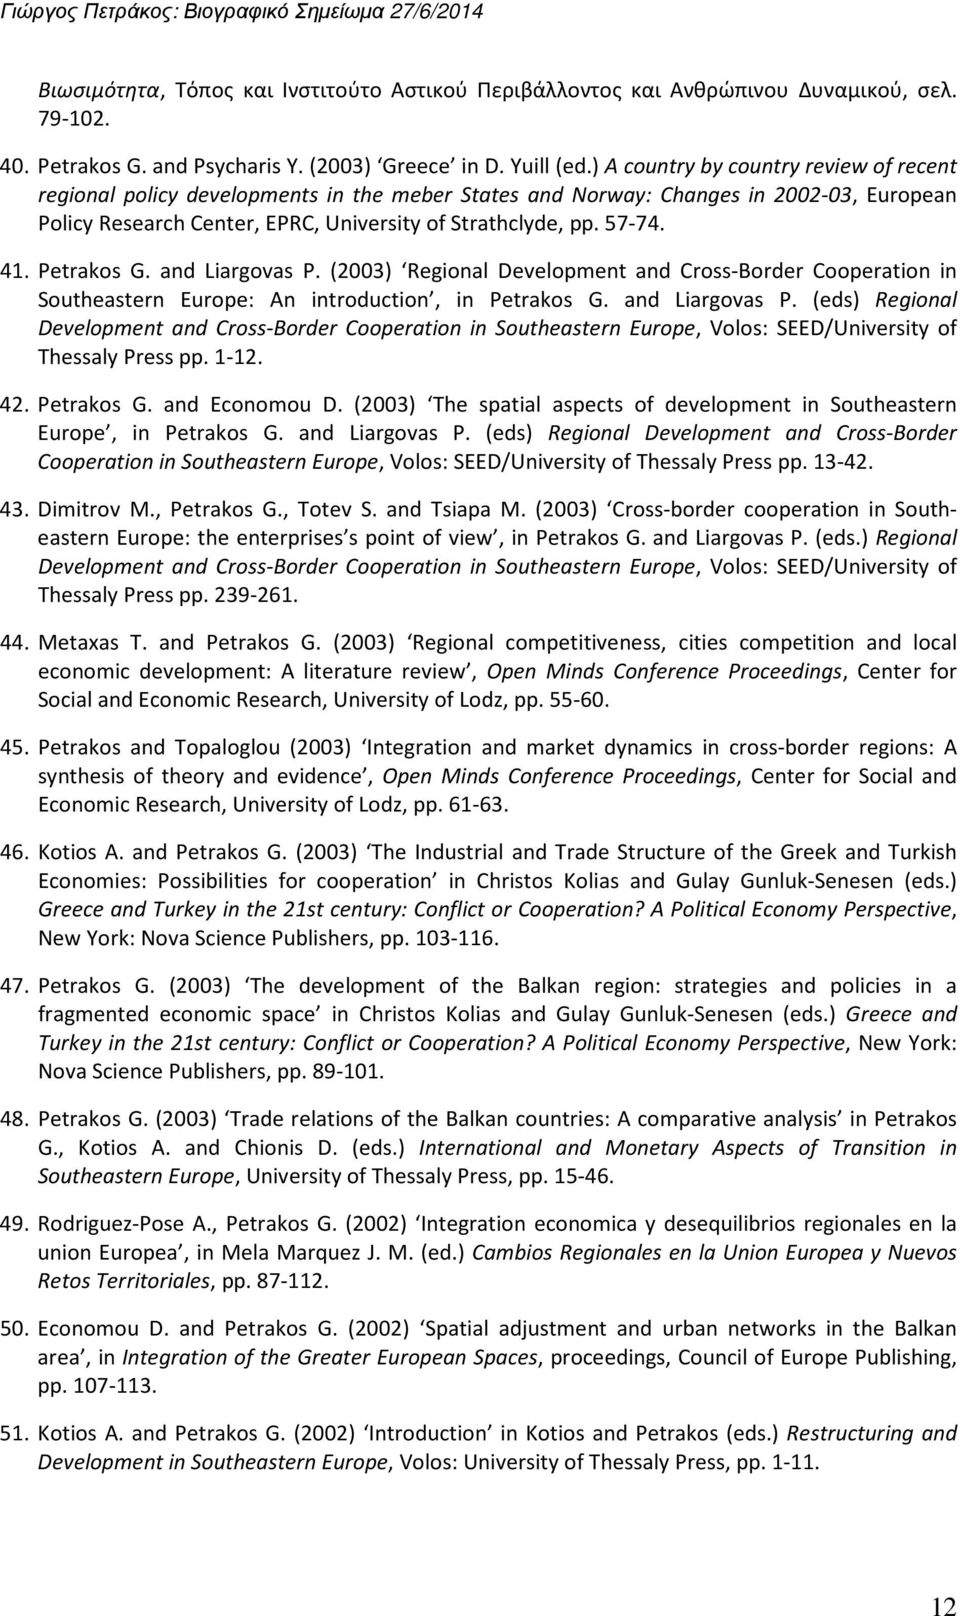 41. Petrakos G. and Liargovas P. (2003) Regional Development and Cross-Border Cooperation in Southeastern Europe: An introduction, in Petrakos G. and Liargovas P. (eds) Regional Development and Cross-Border Cooperation in Southeastern Europe, Volos: SEED/University of Thessaly Press pp.